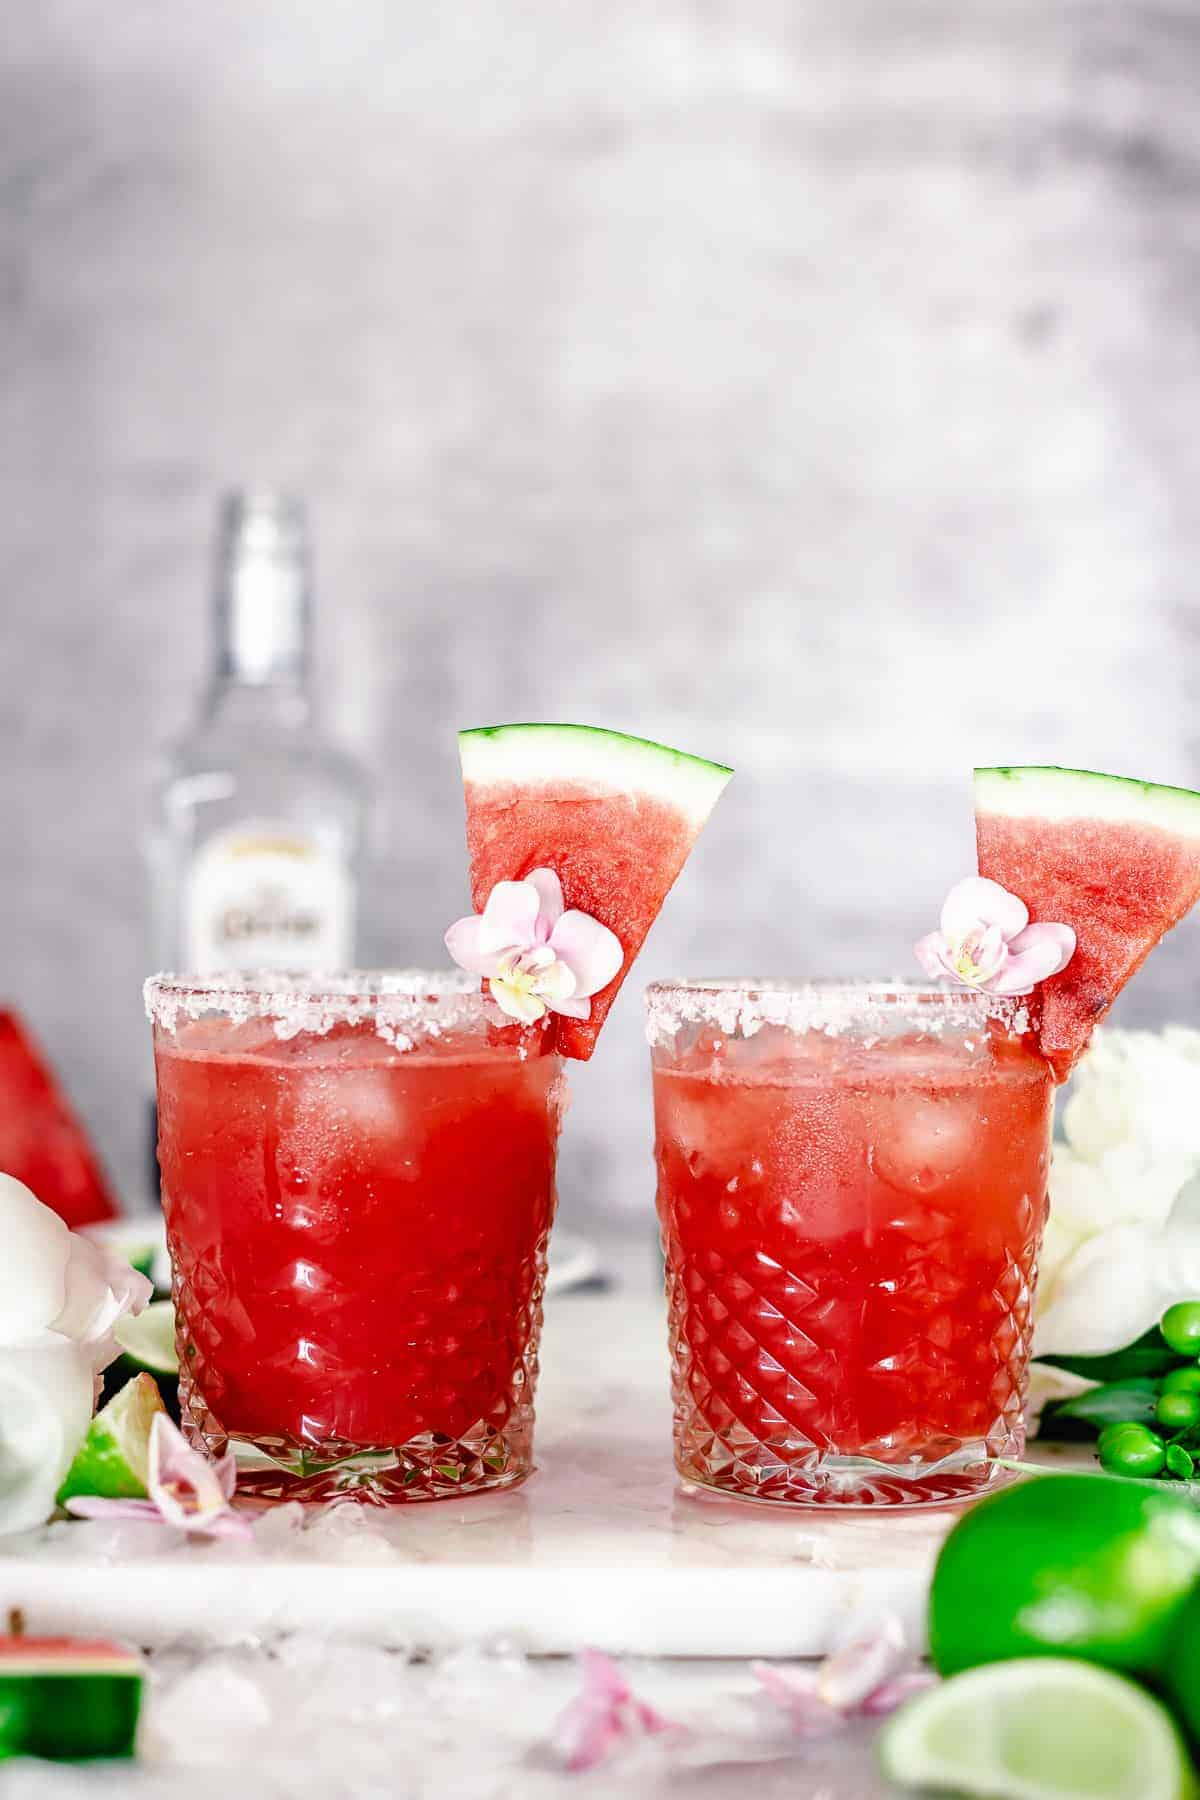 angle view shot of two watermelon margaritas side by side in whiskey glass garnished with purple pink flower, and watermelon slice